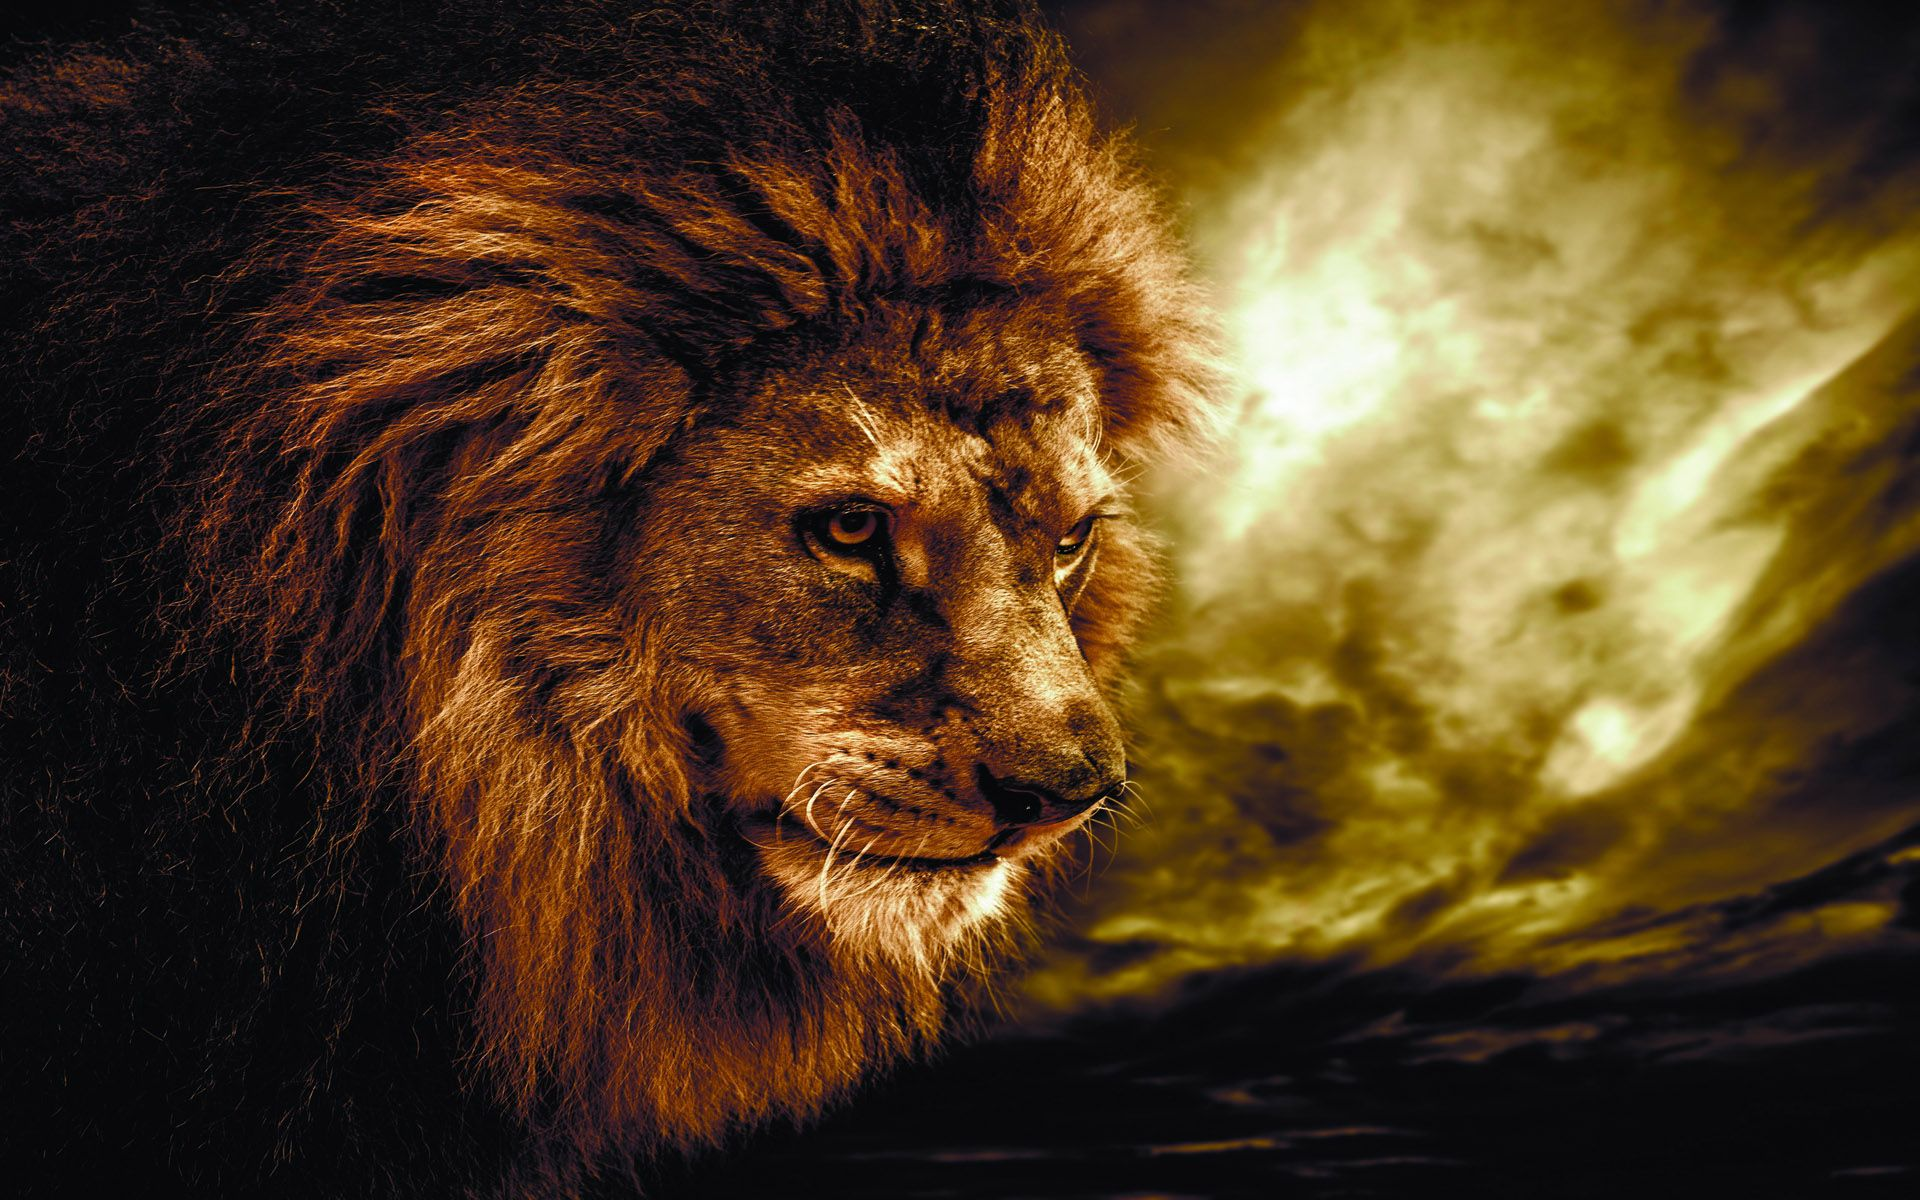 Lion Abstract Iphone Wallpaper Background Wallpaper Quotes Iphone Lion Angry Hd 1080p Wallpaper From Kepleset Com Animal Wallpaper Lion Images Lion Background